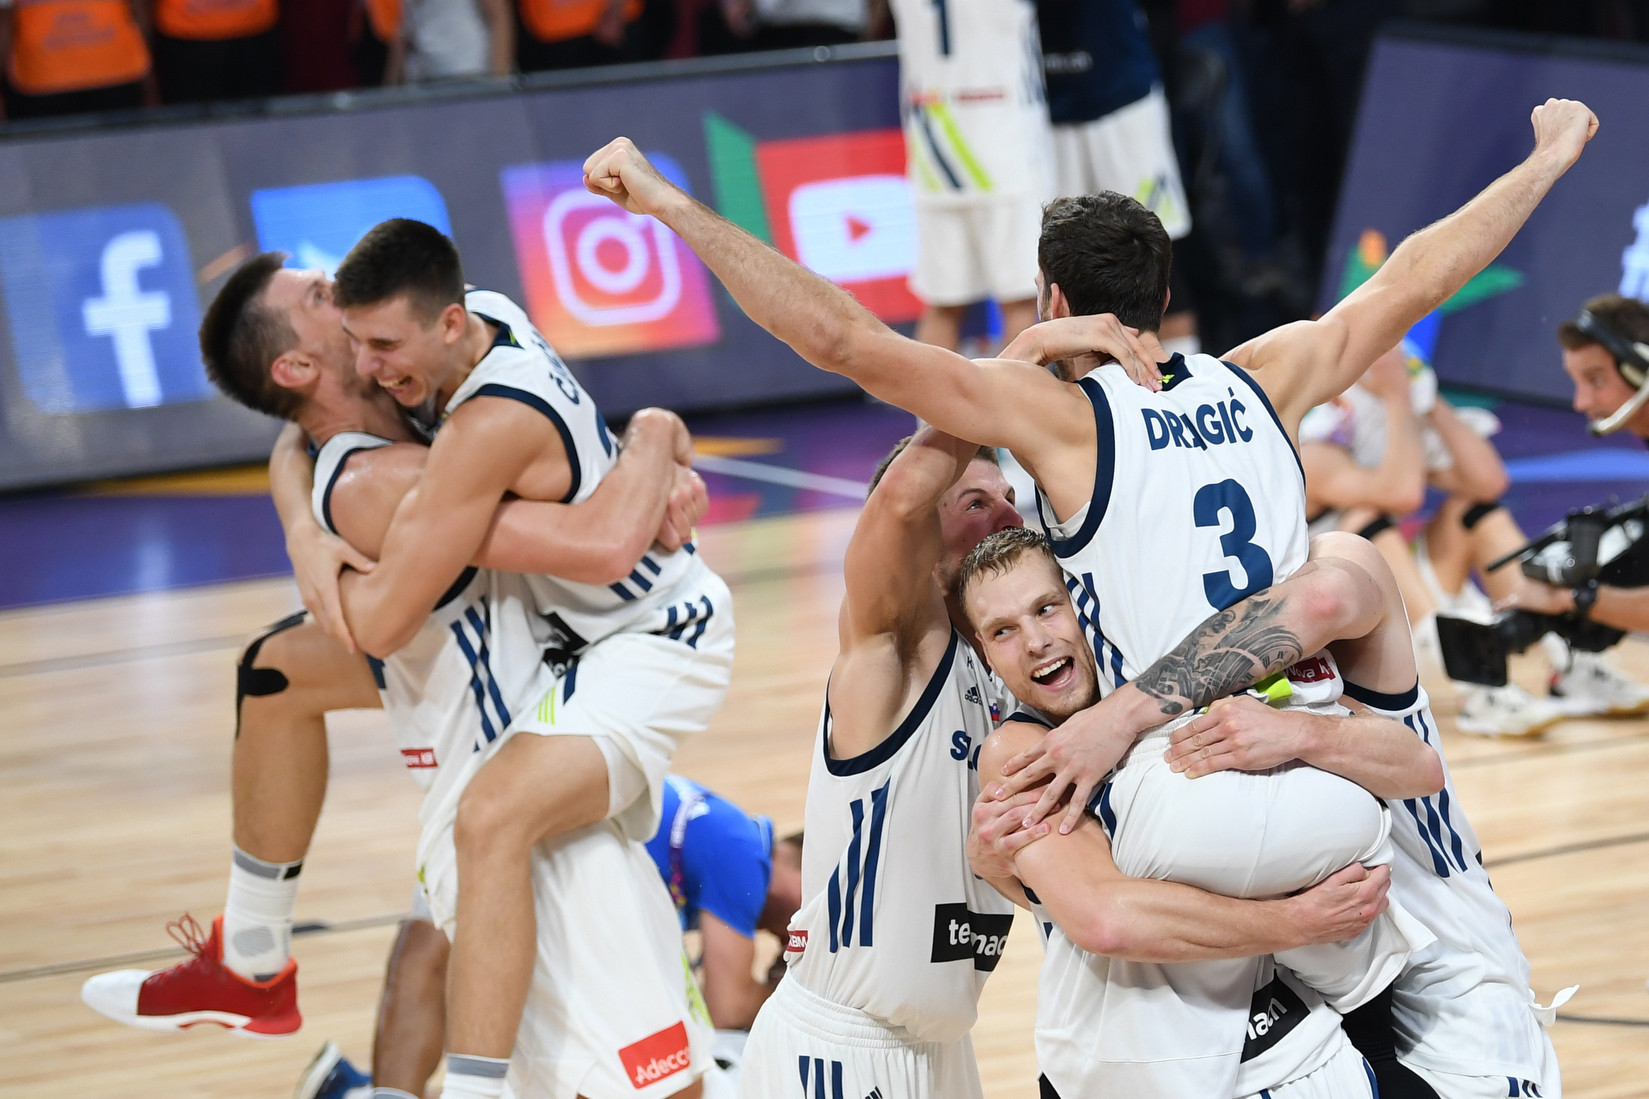 Slovenia's players celebrate after defeating Serbia during the FIBA Eurobasket 2017 men's final but now the world governing body claim the international game is under threat ©Getty Images